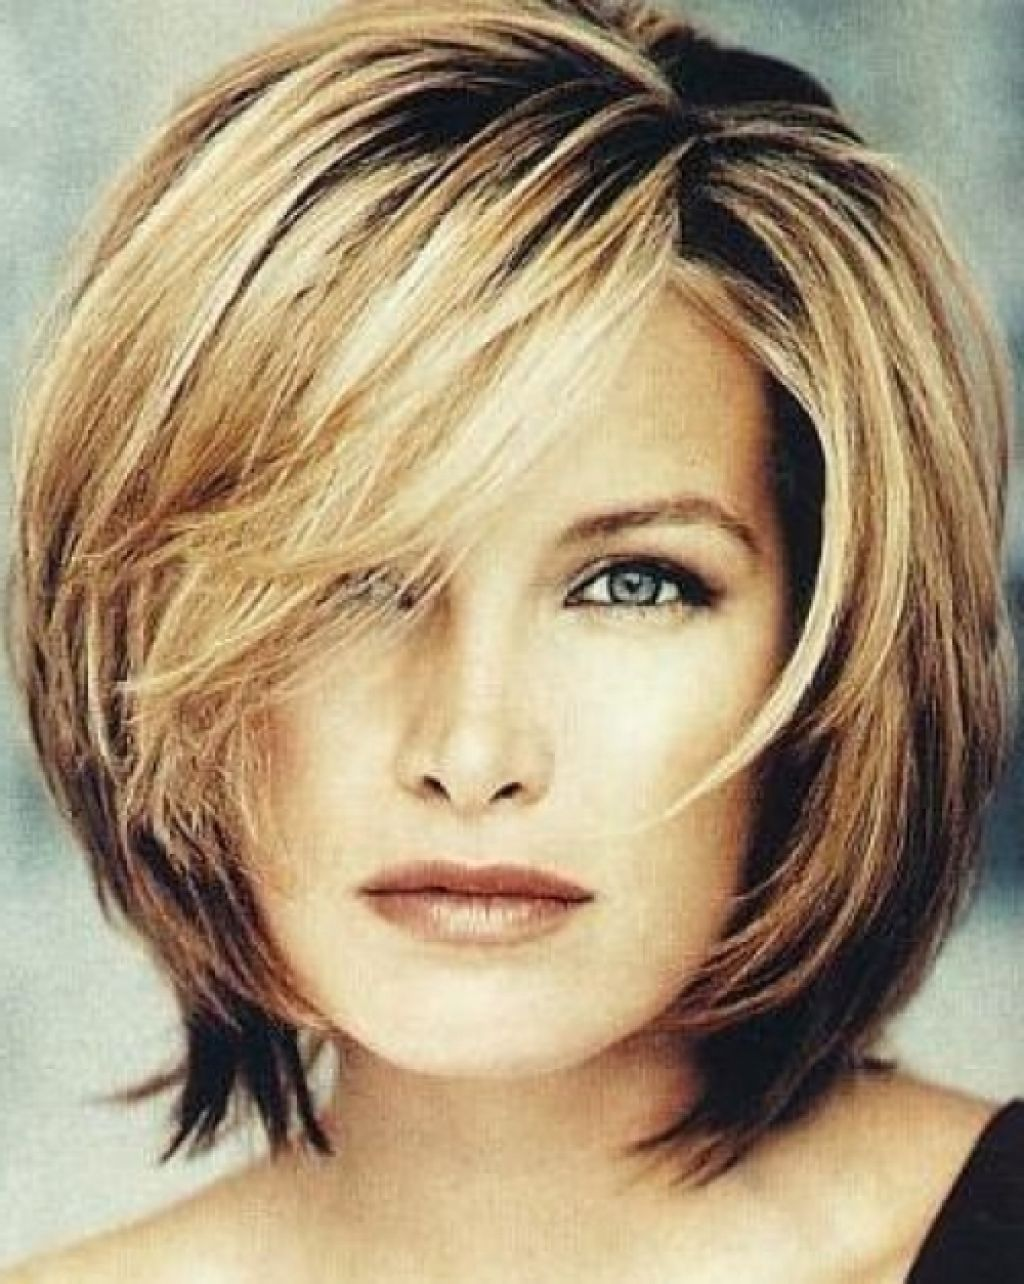 medium hairstyles for women over 40 : medium length hairstyles